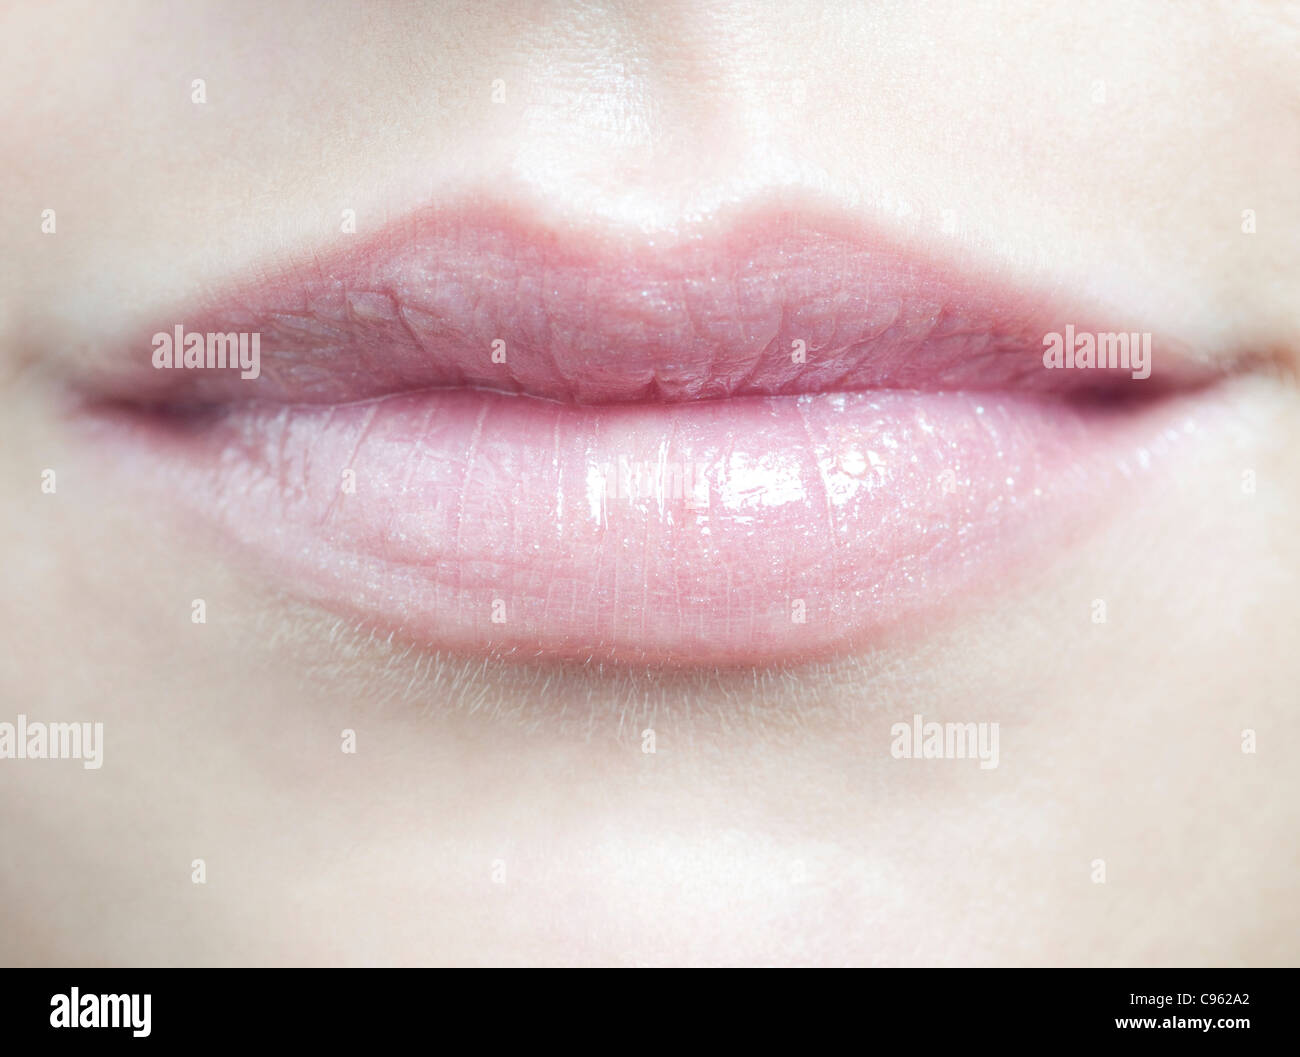 Woman's mouth. - Stock Image